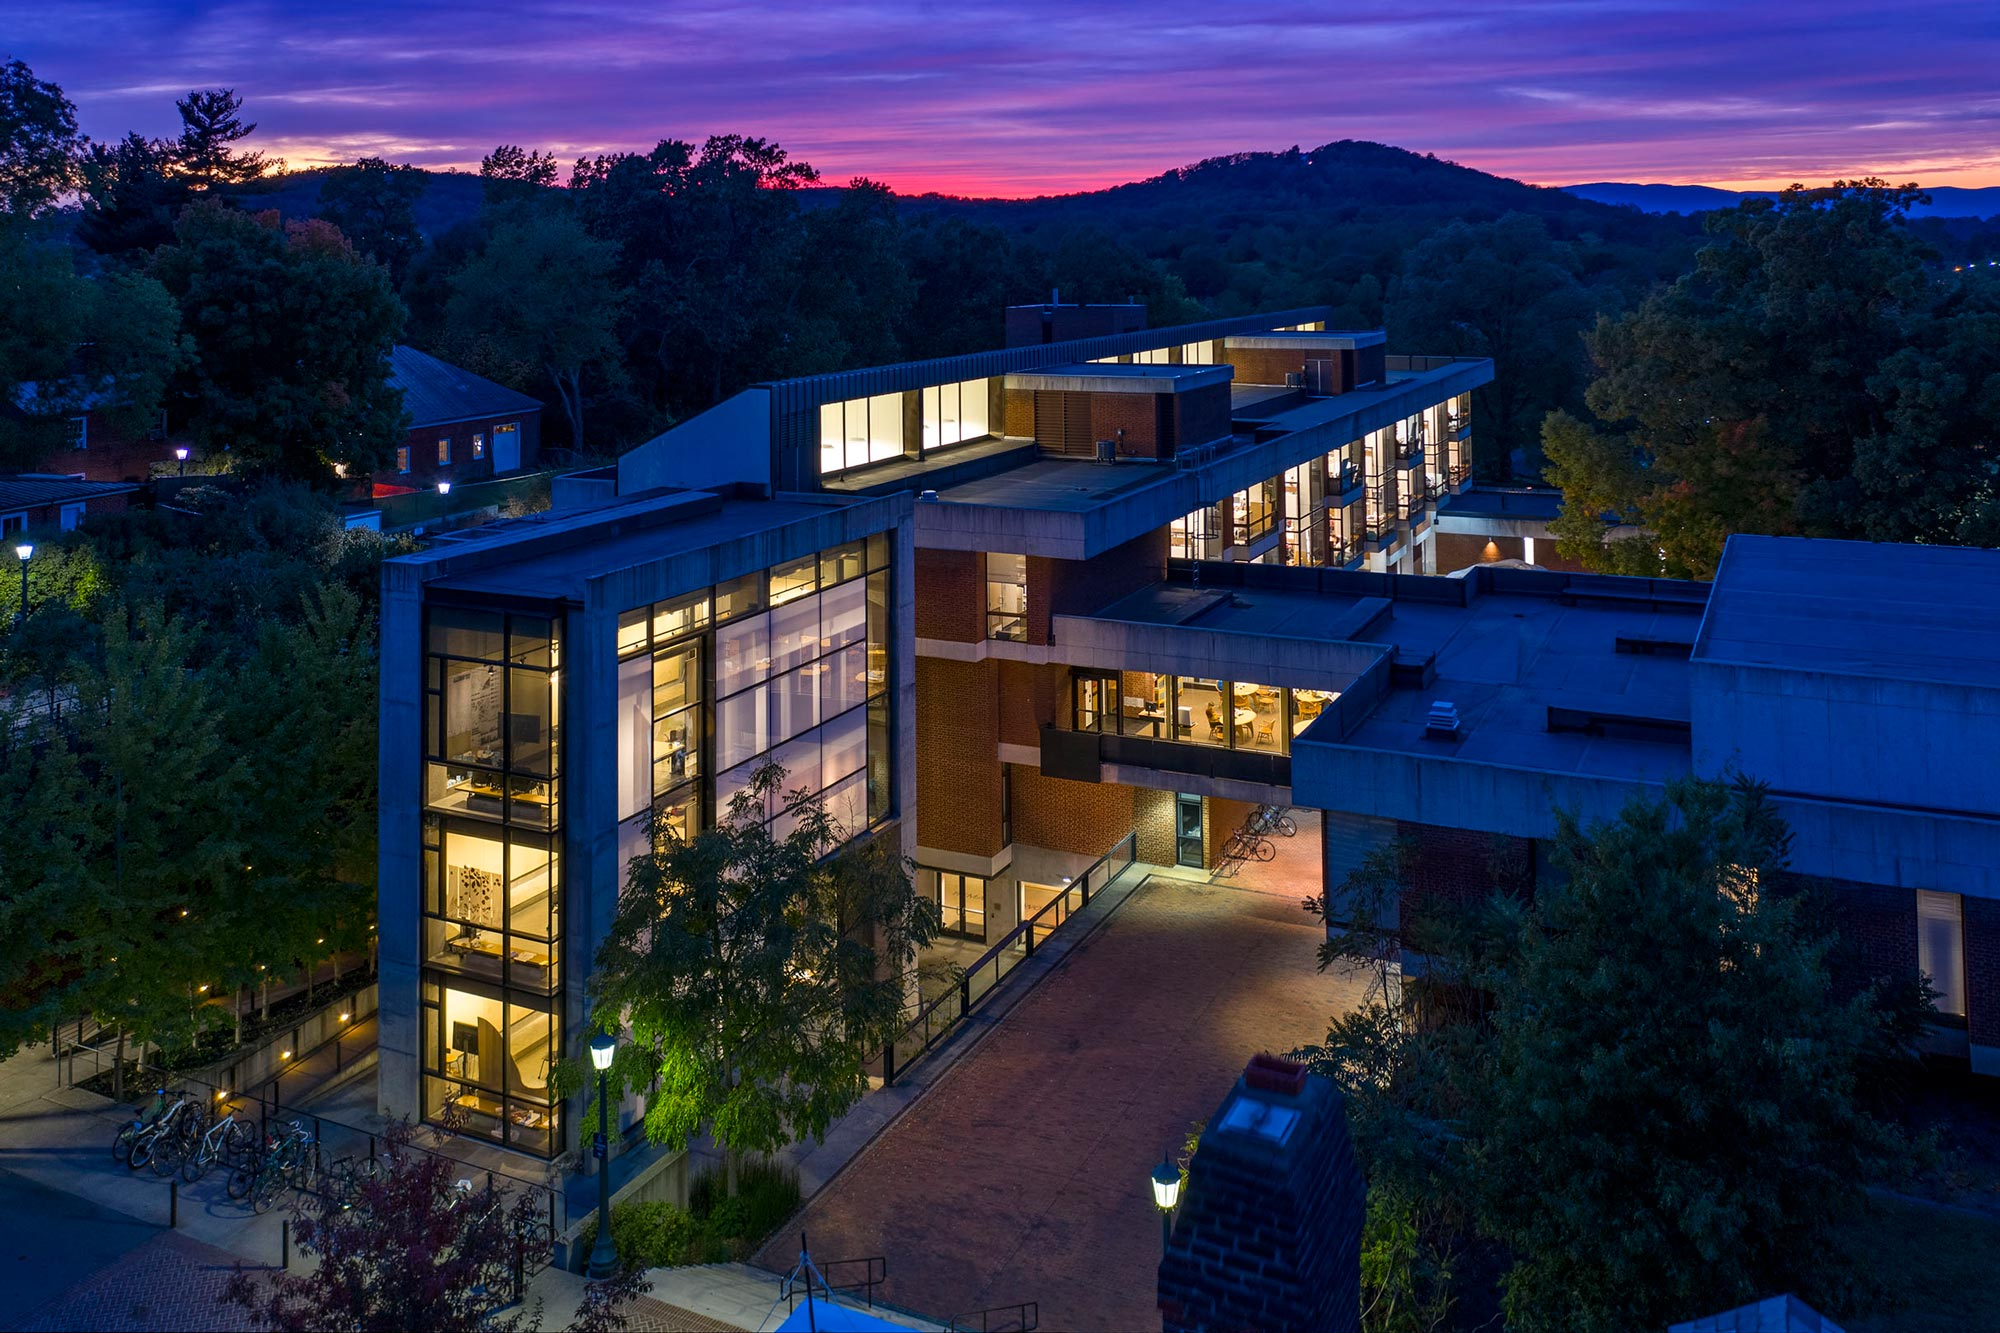 Cambell Hall is home to the University of Virginia's School of Architecture.